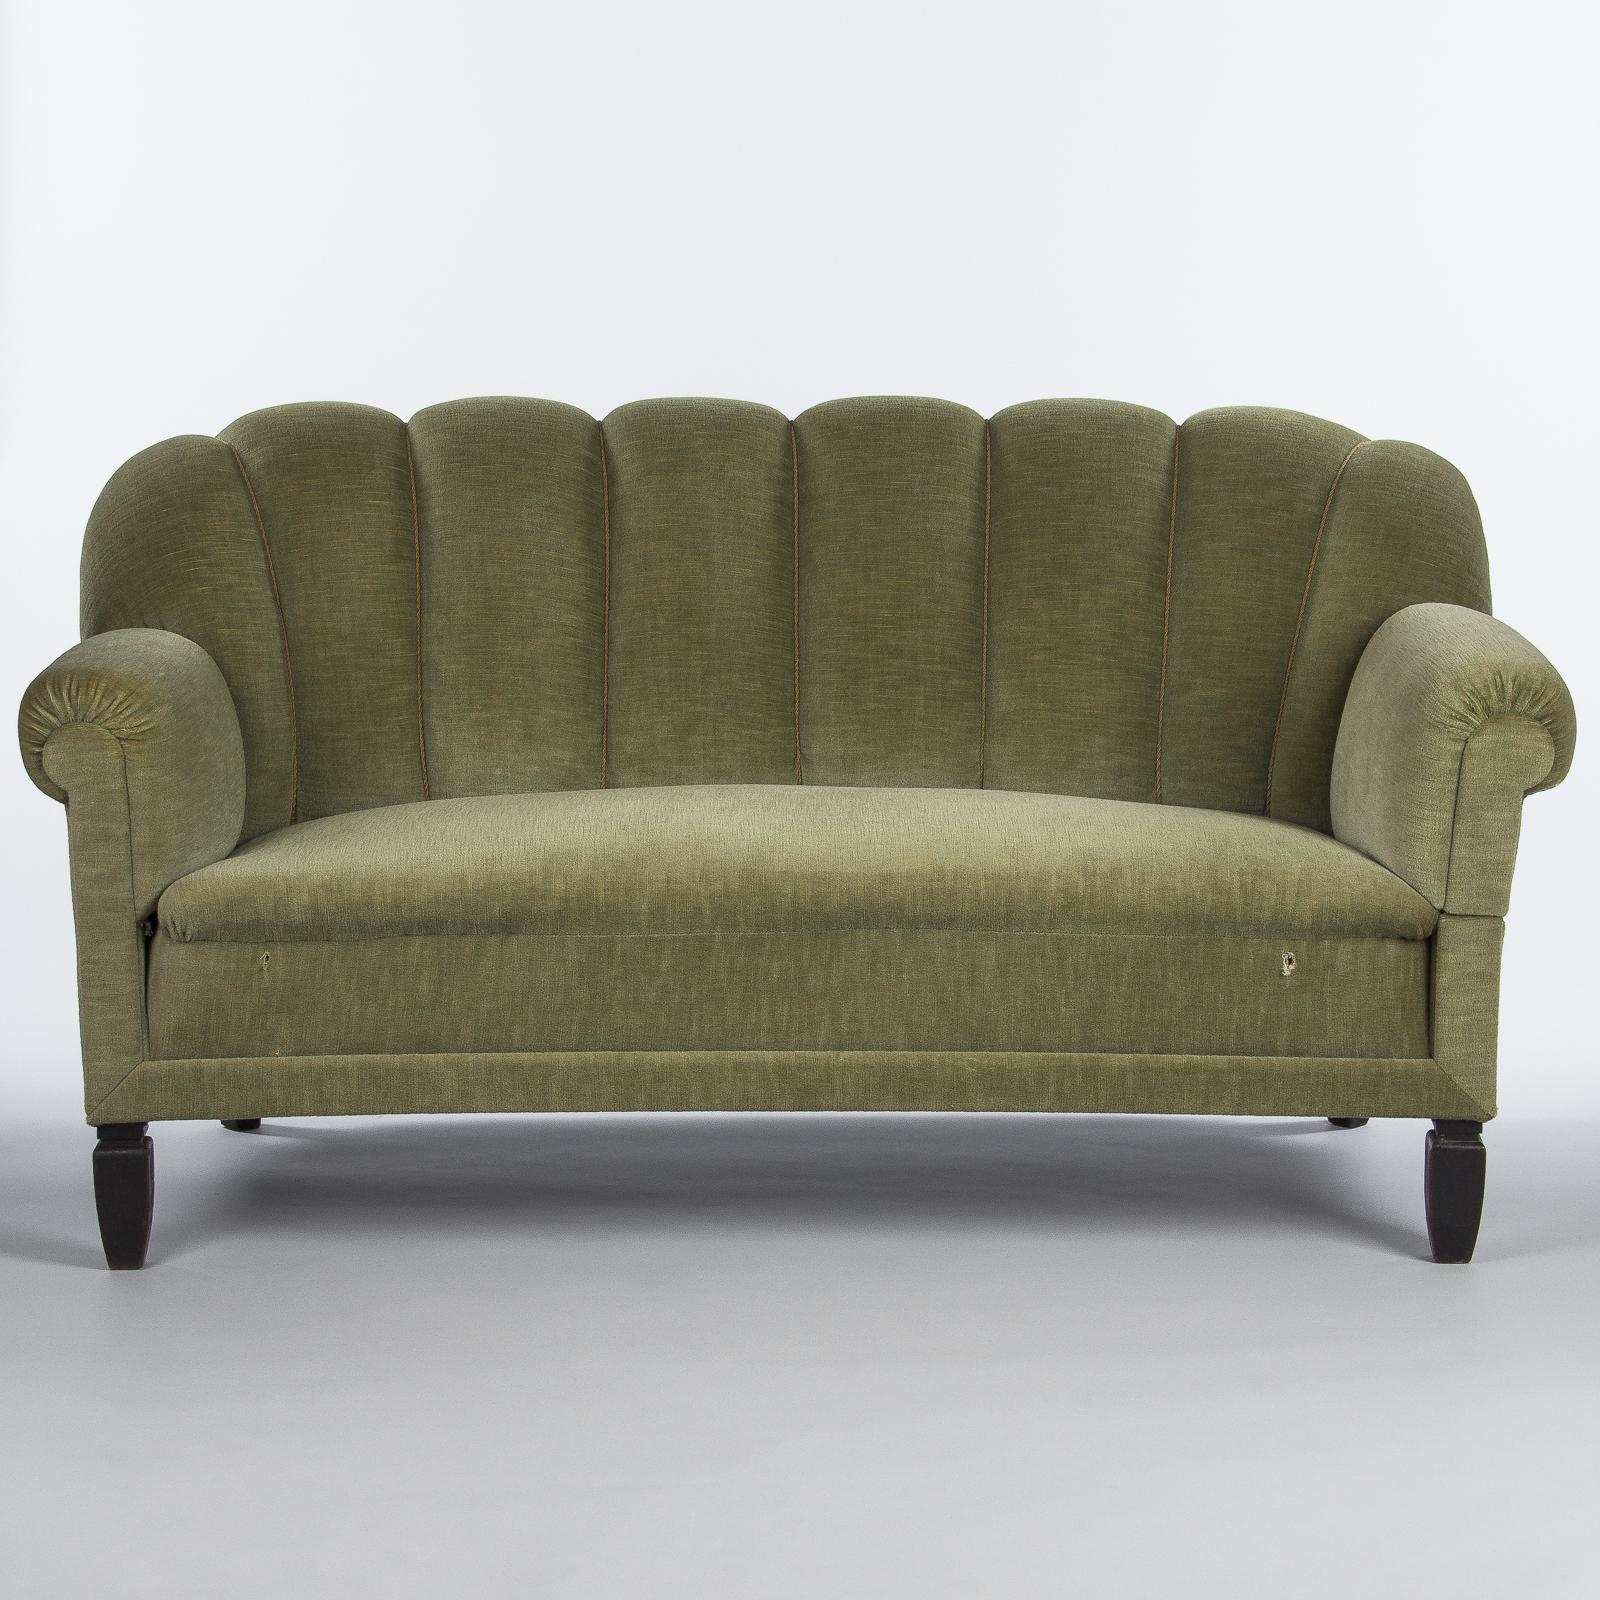 1940s Green Upholstered French Sofa Settee For Sale At 1stdibs